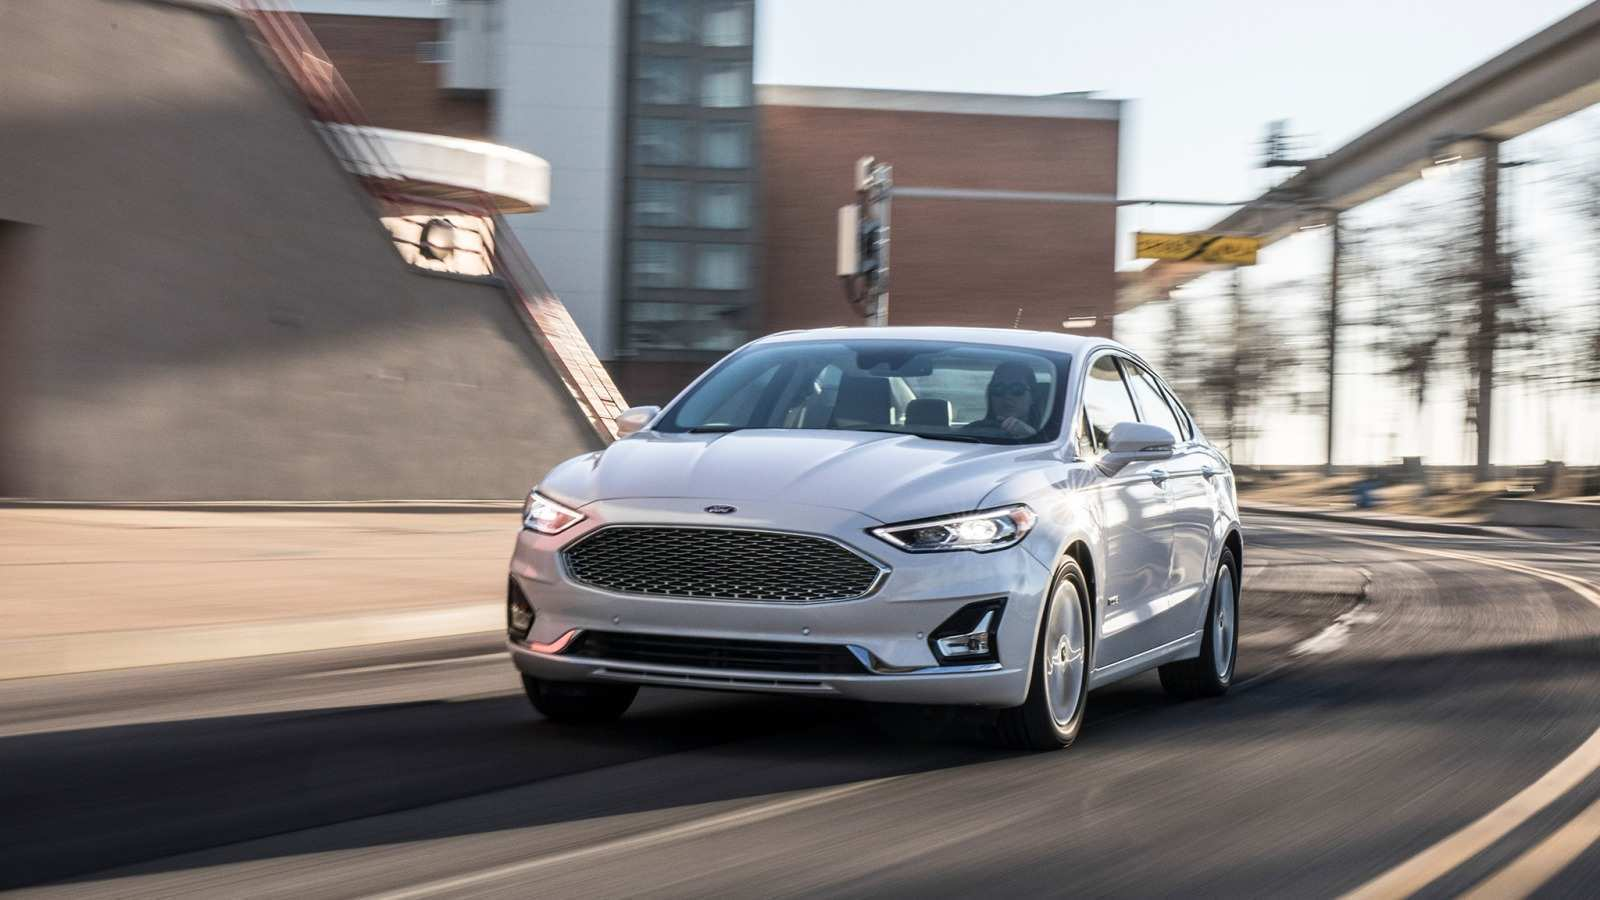 18 Gallery of 2019 Ford Hybrid Cars Price with 2019 Ford Hybrid Cars